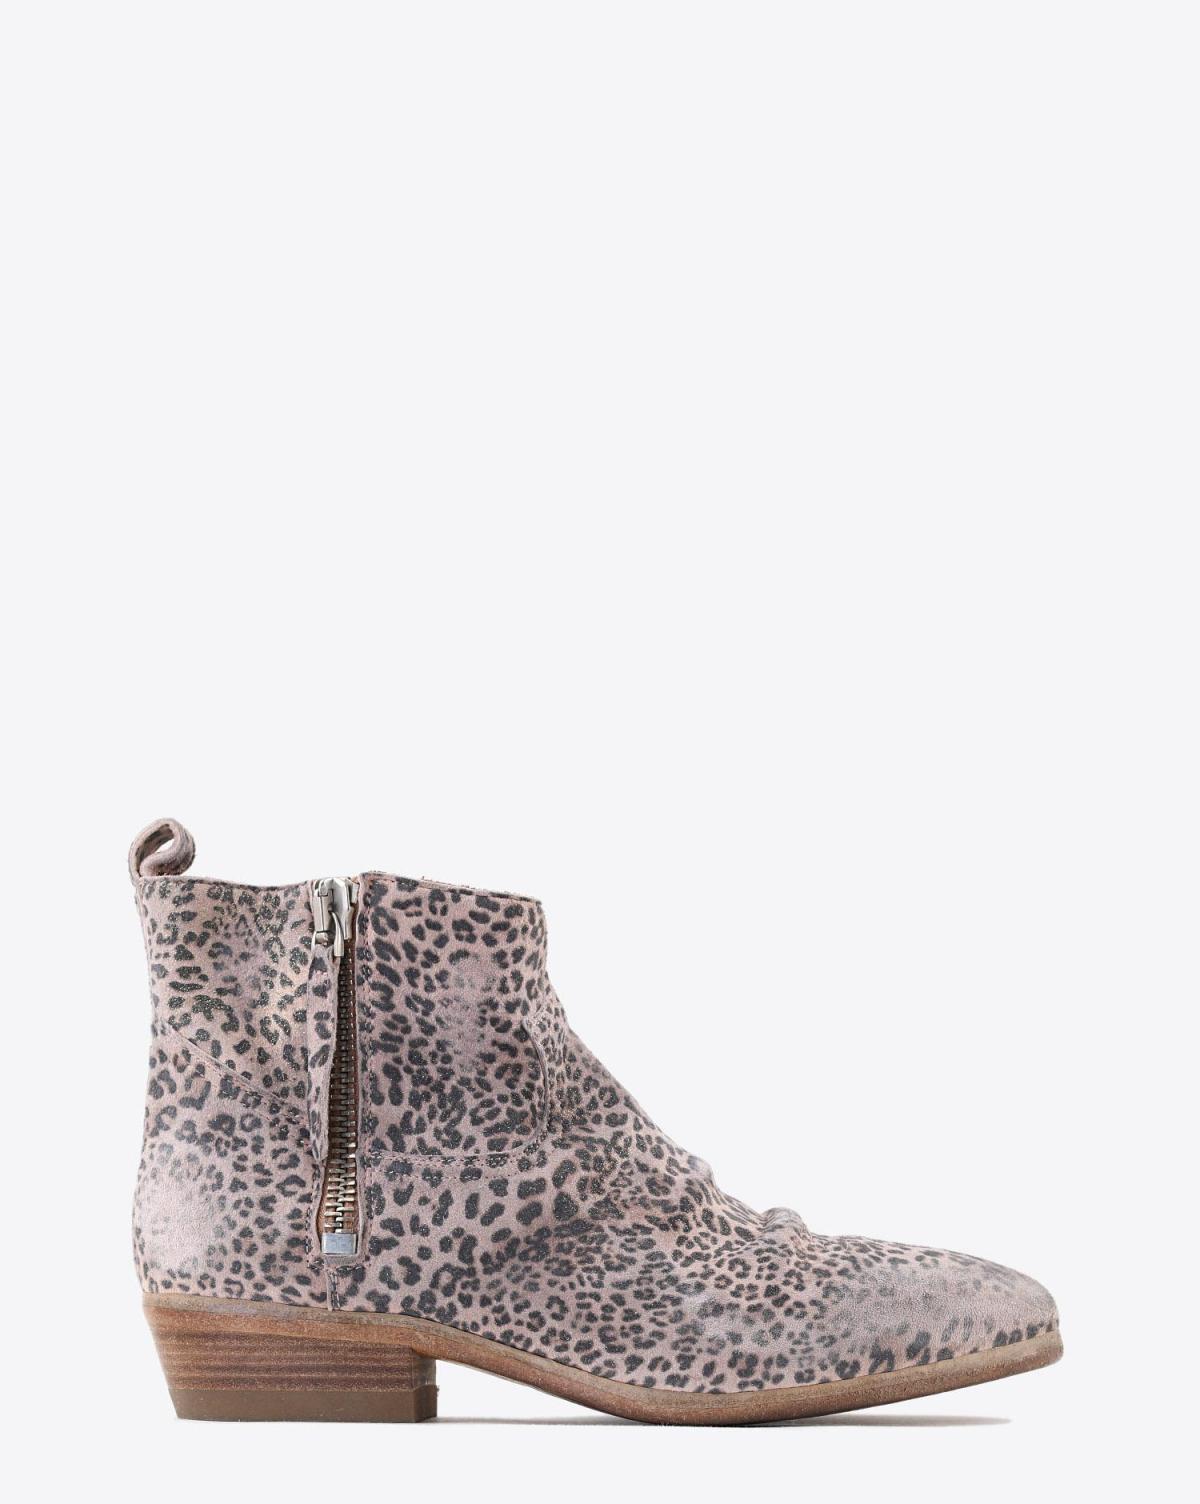 Golden Goose Woman Chaussures Collection Boots Viand - Glitter Leopard Suede